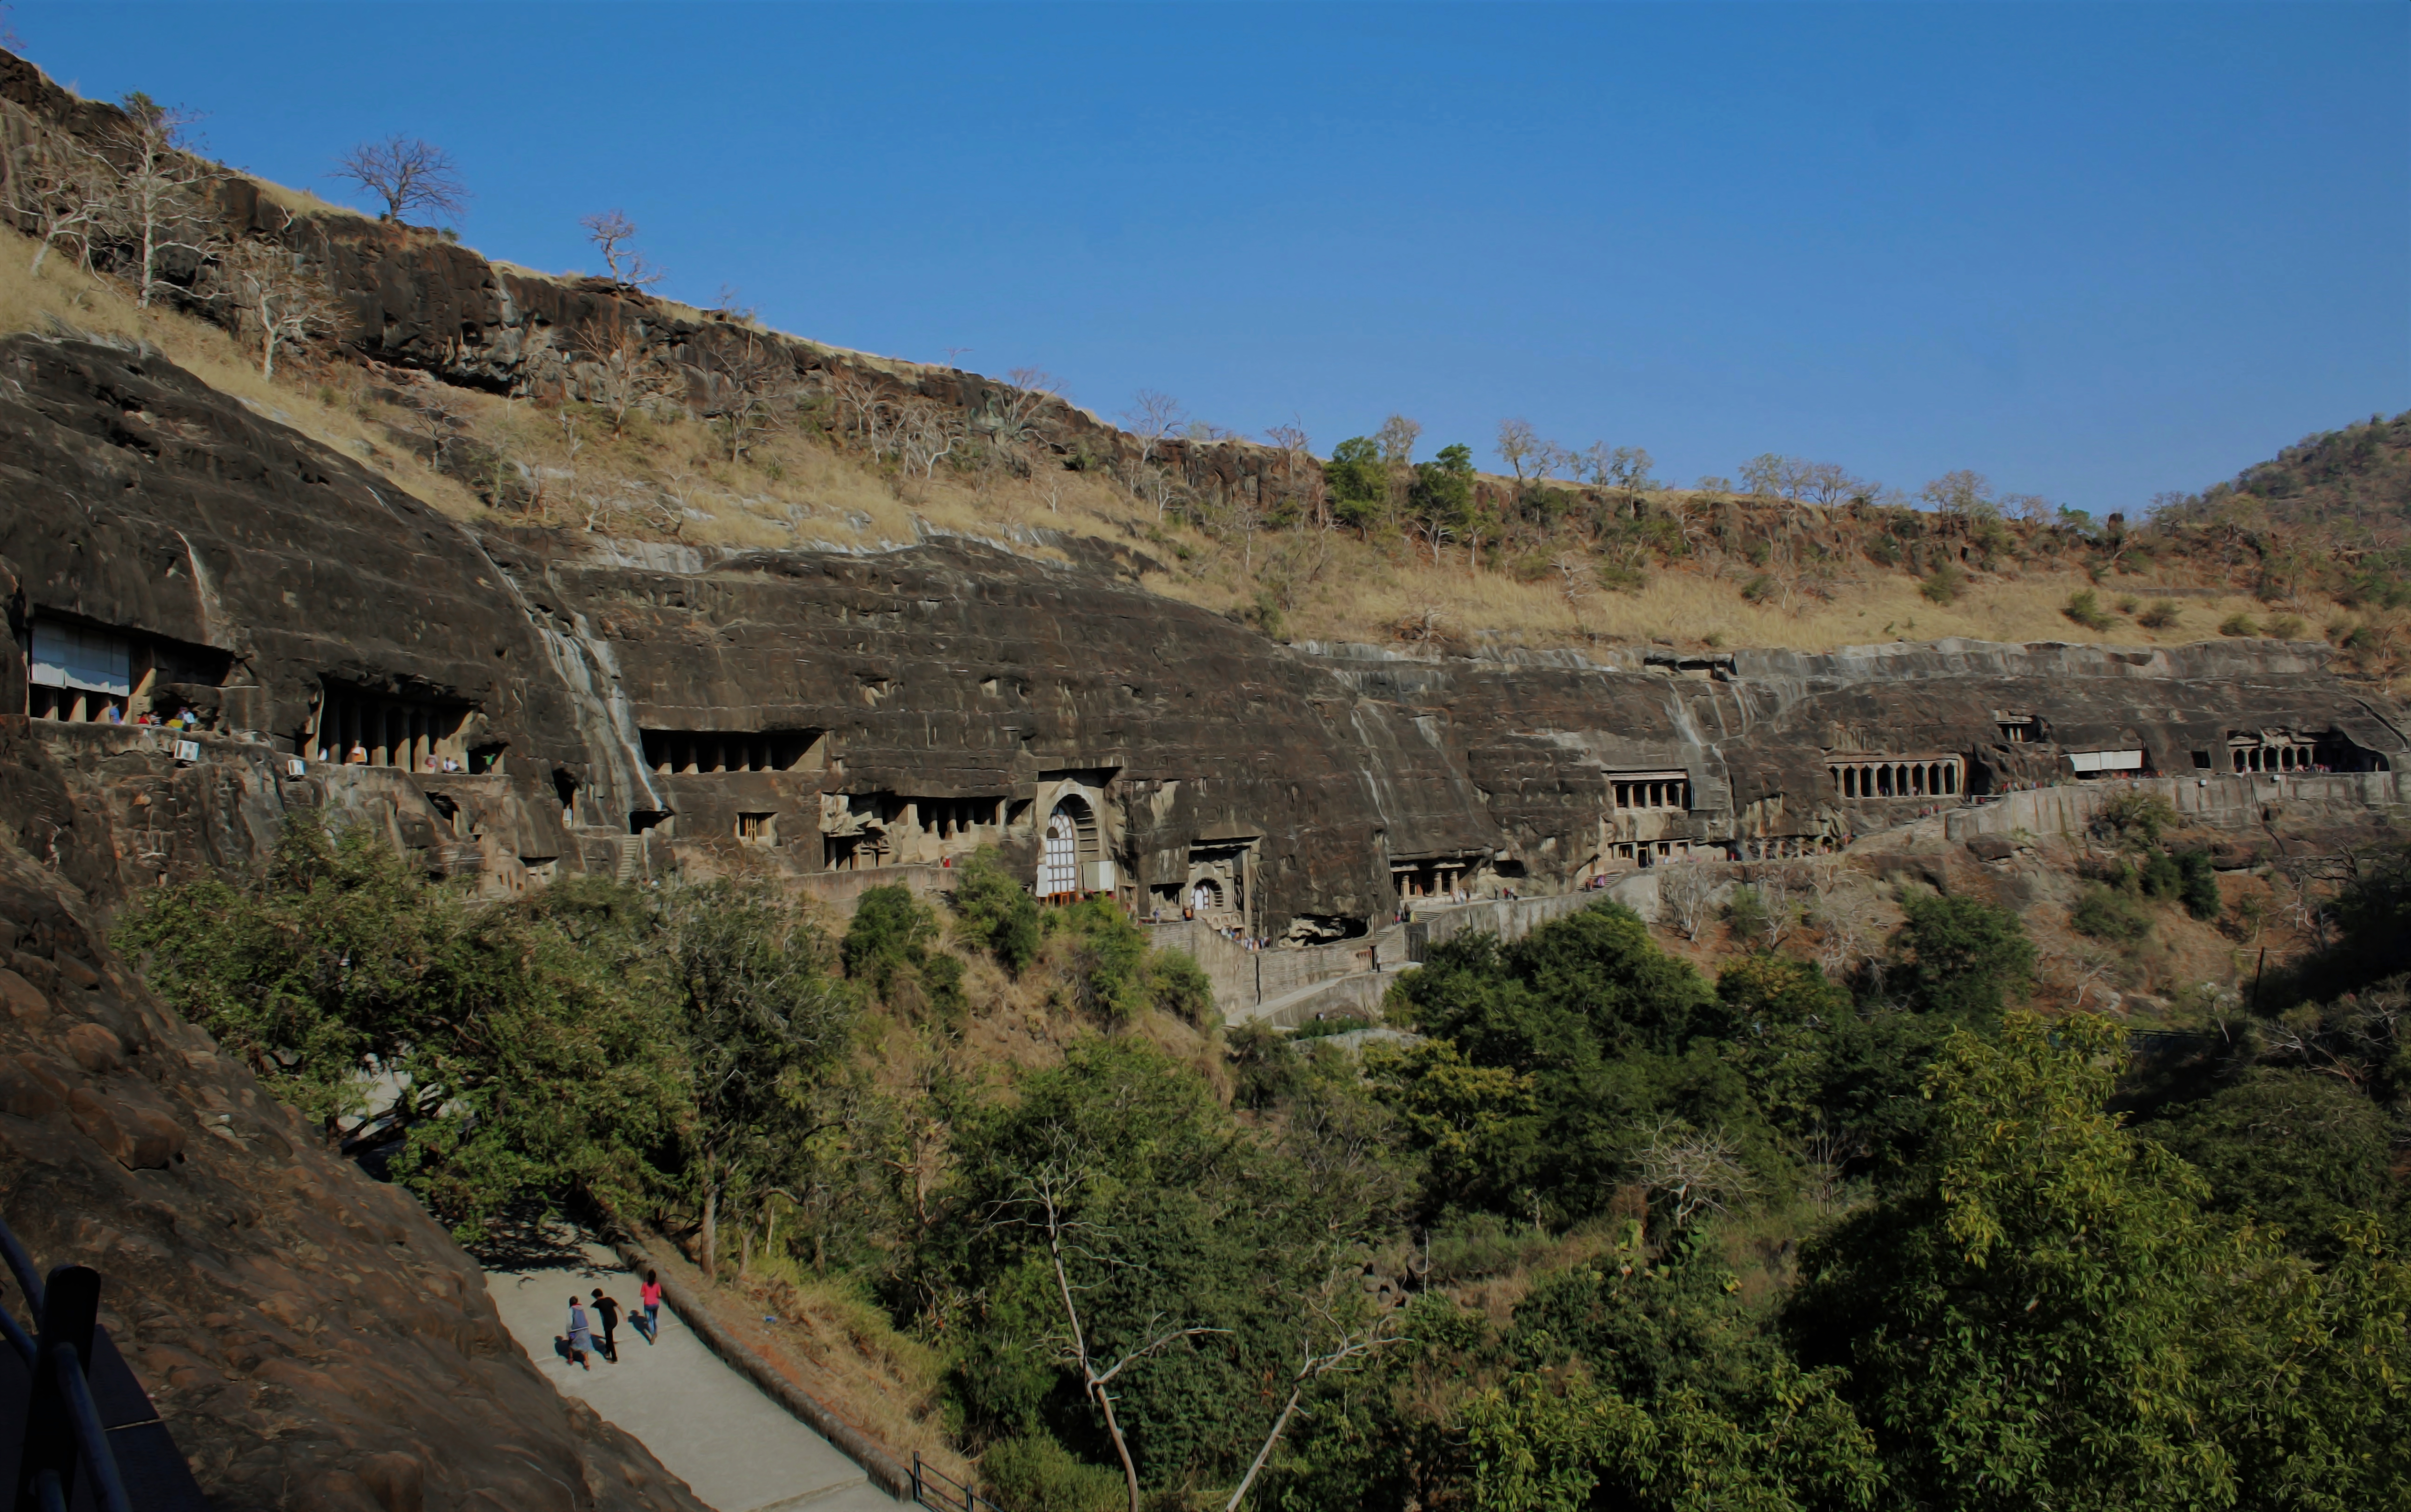 The Ajanta Caves - Arranged serially in a horse-shoe shaped Ridge